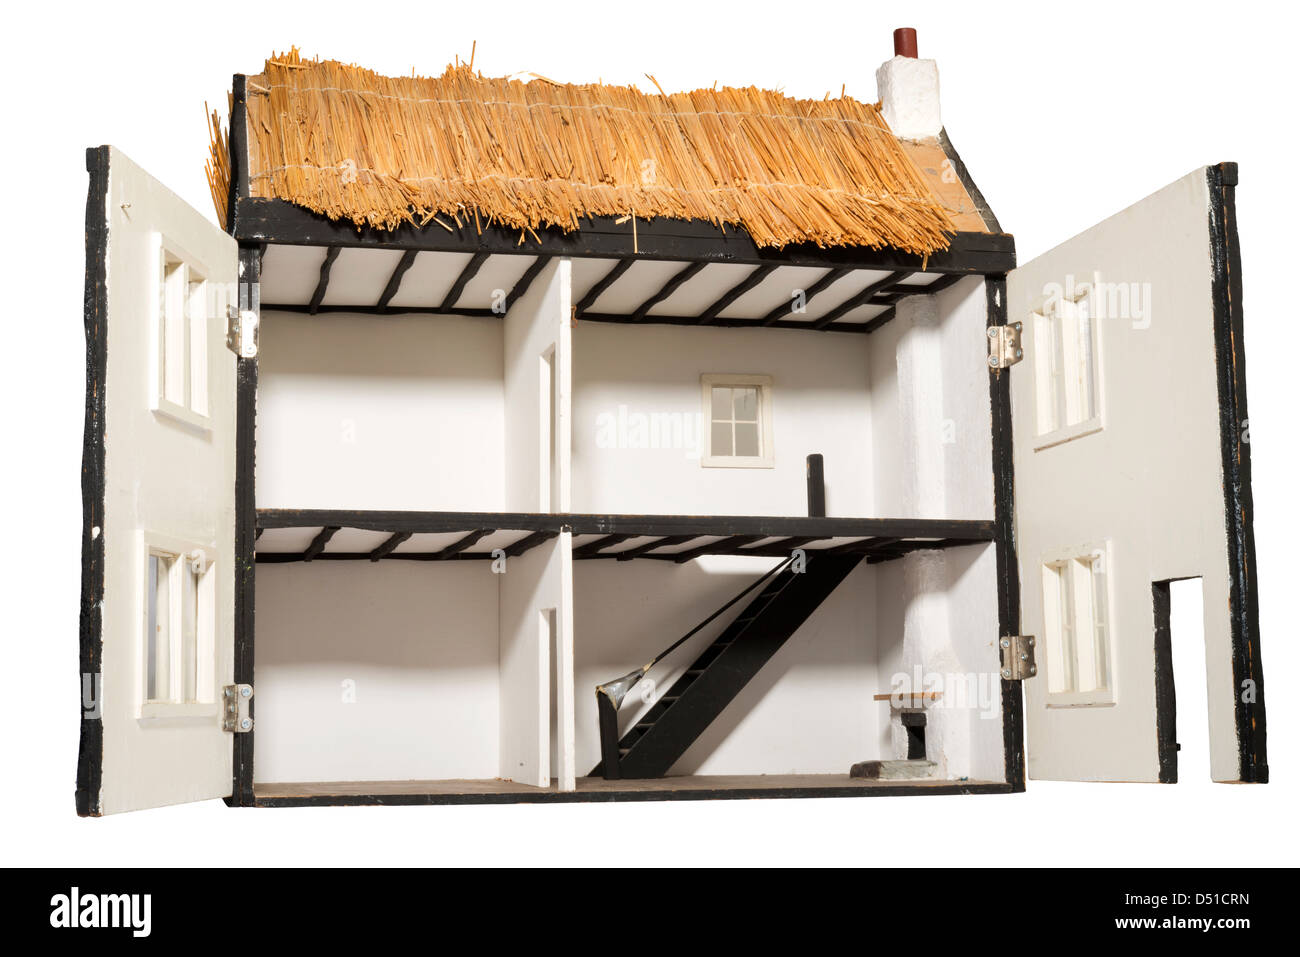 thatched roof dolls house - Stock Image